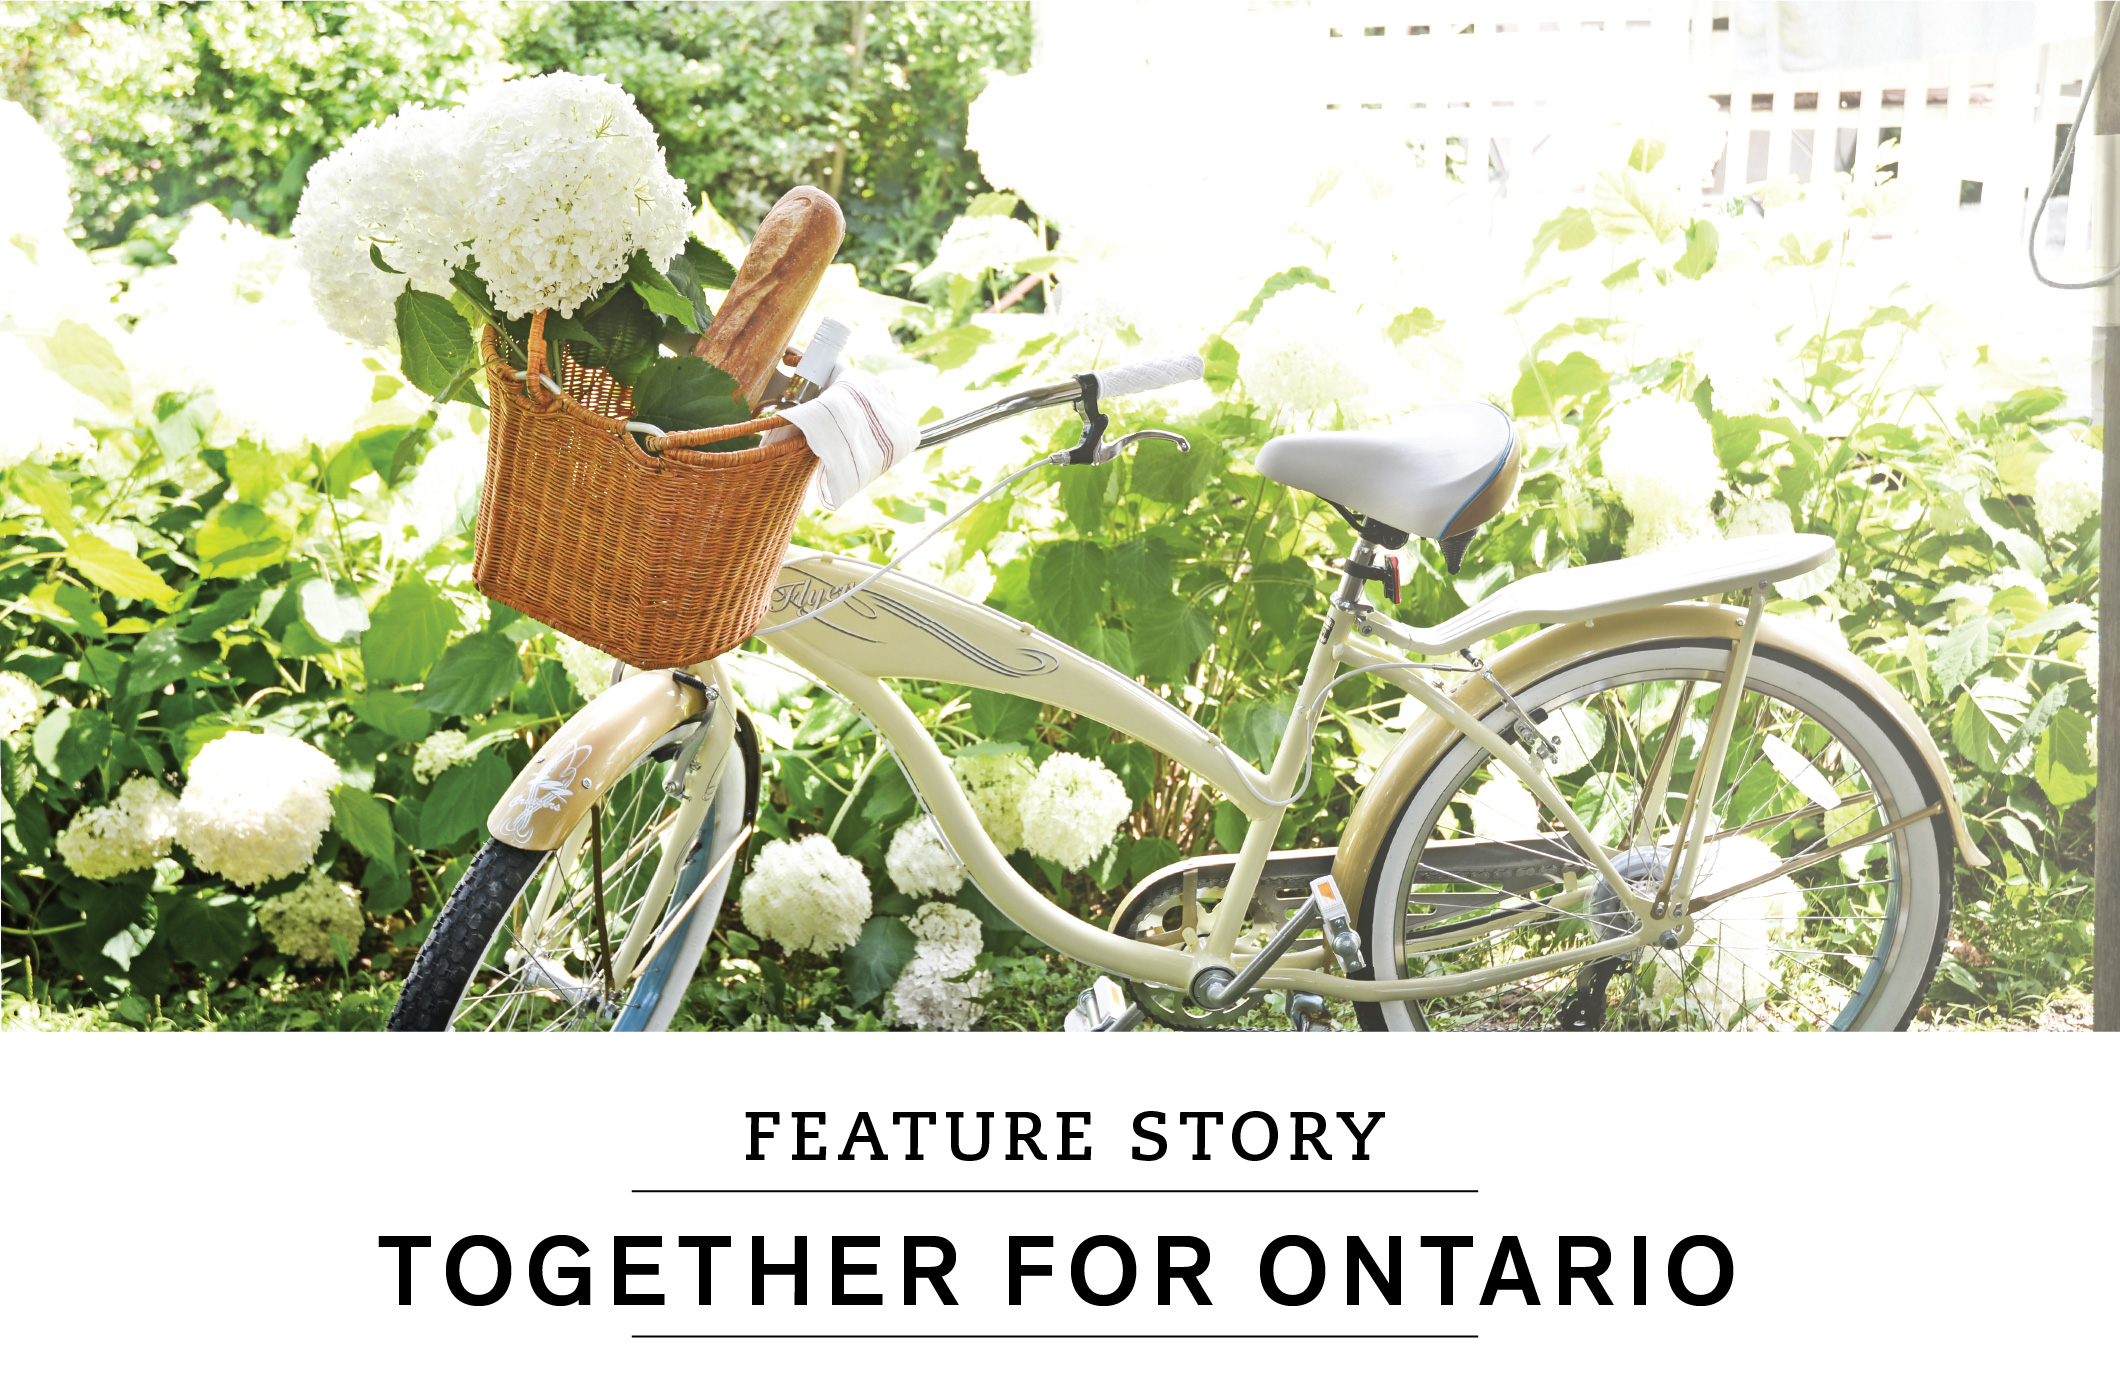 Feature story: Together for Ontario